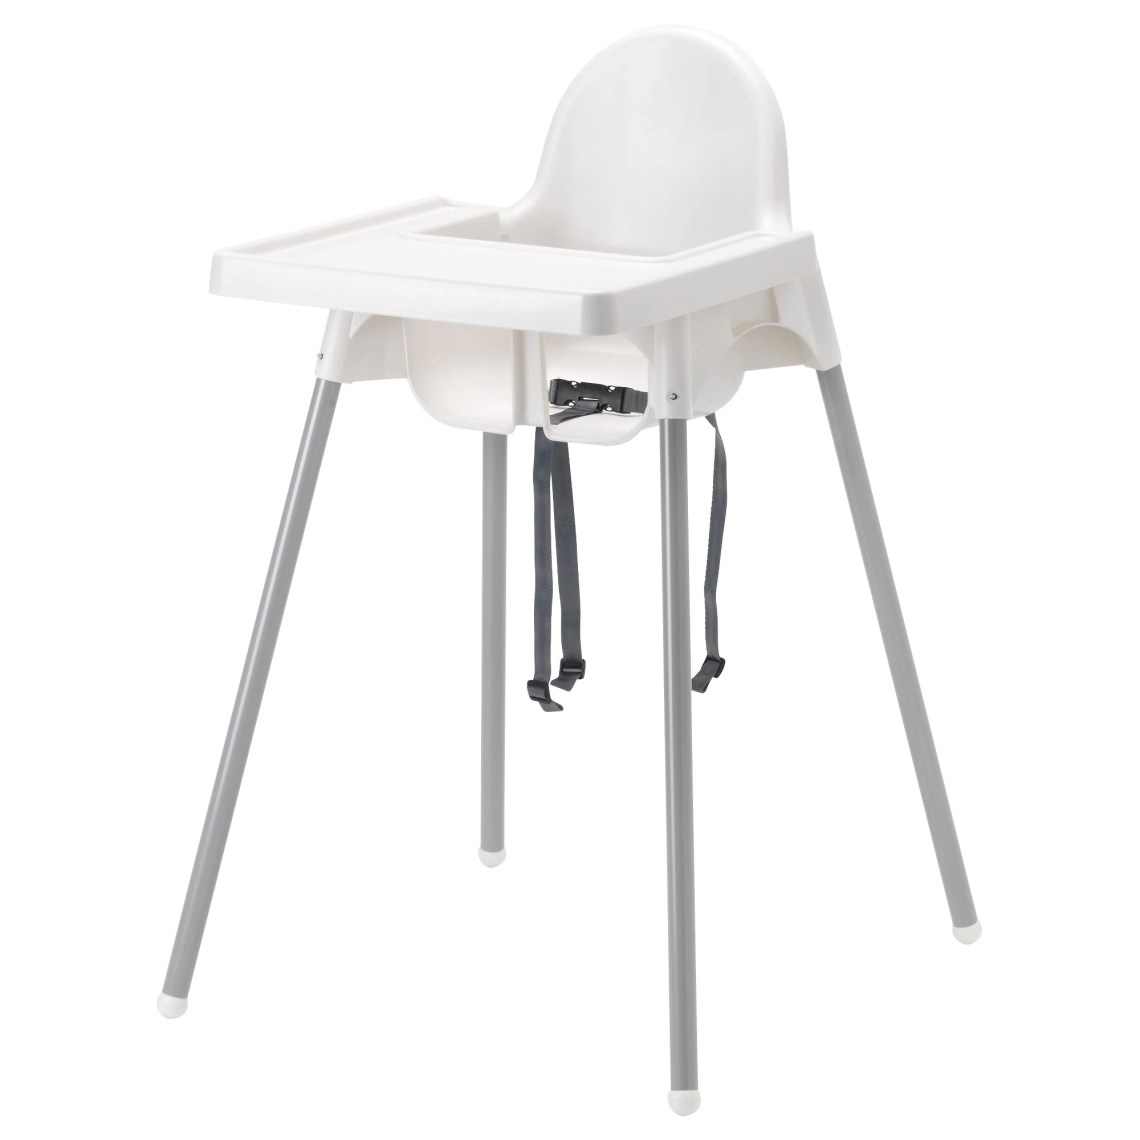 Ikea Antilop Chair